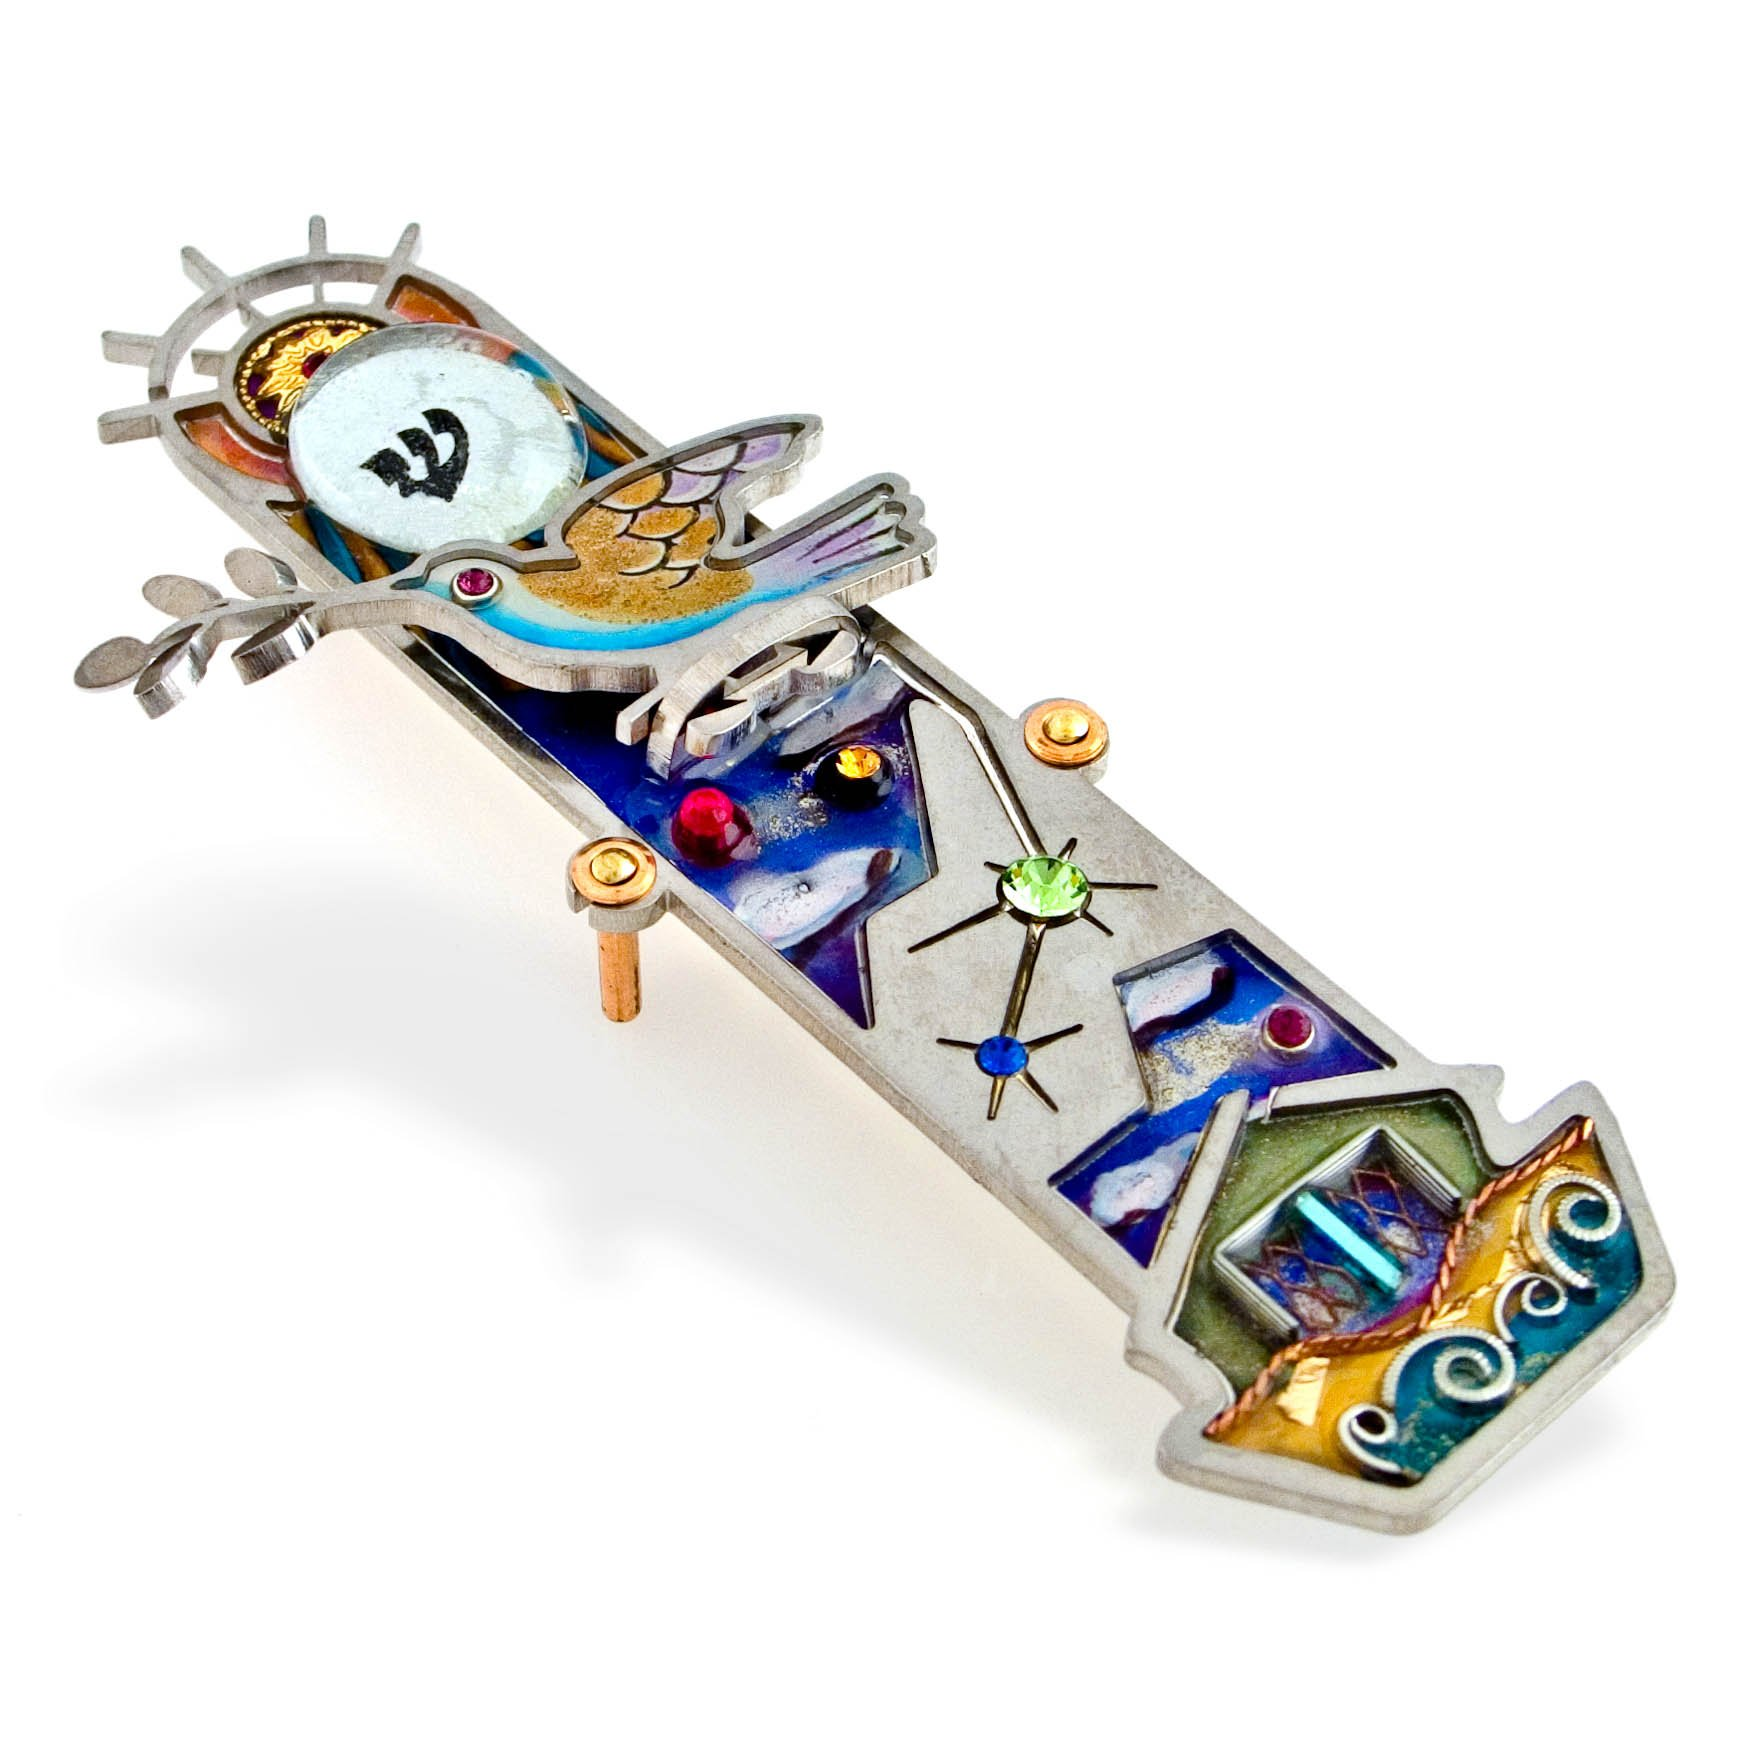 Seeka Noah's Ark Mezuzah Curated and sold by The Artazia Collection M0069 by The Artazia Collection